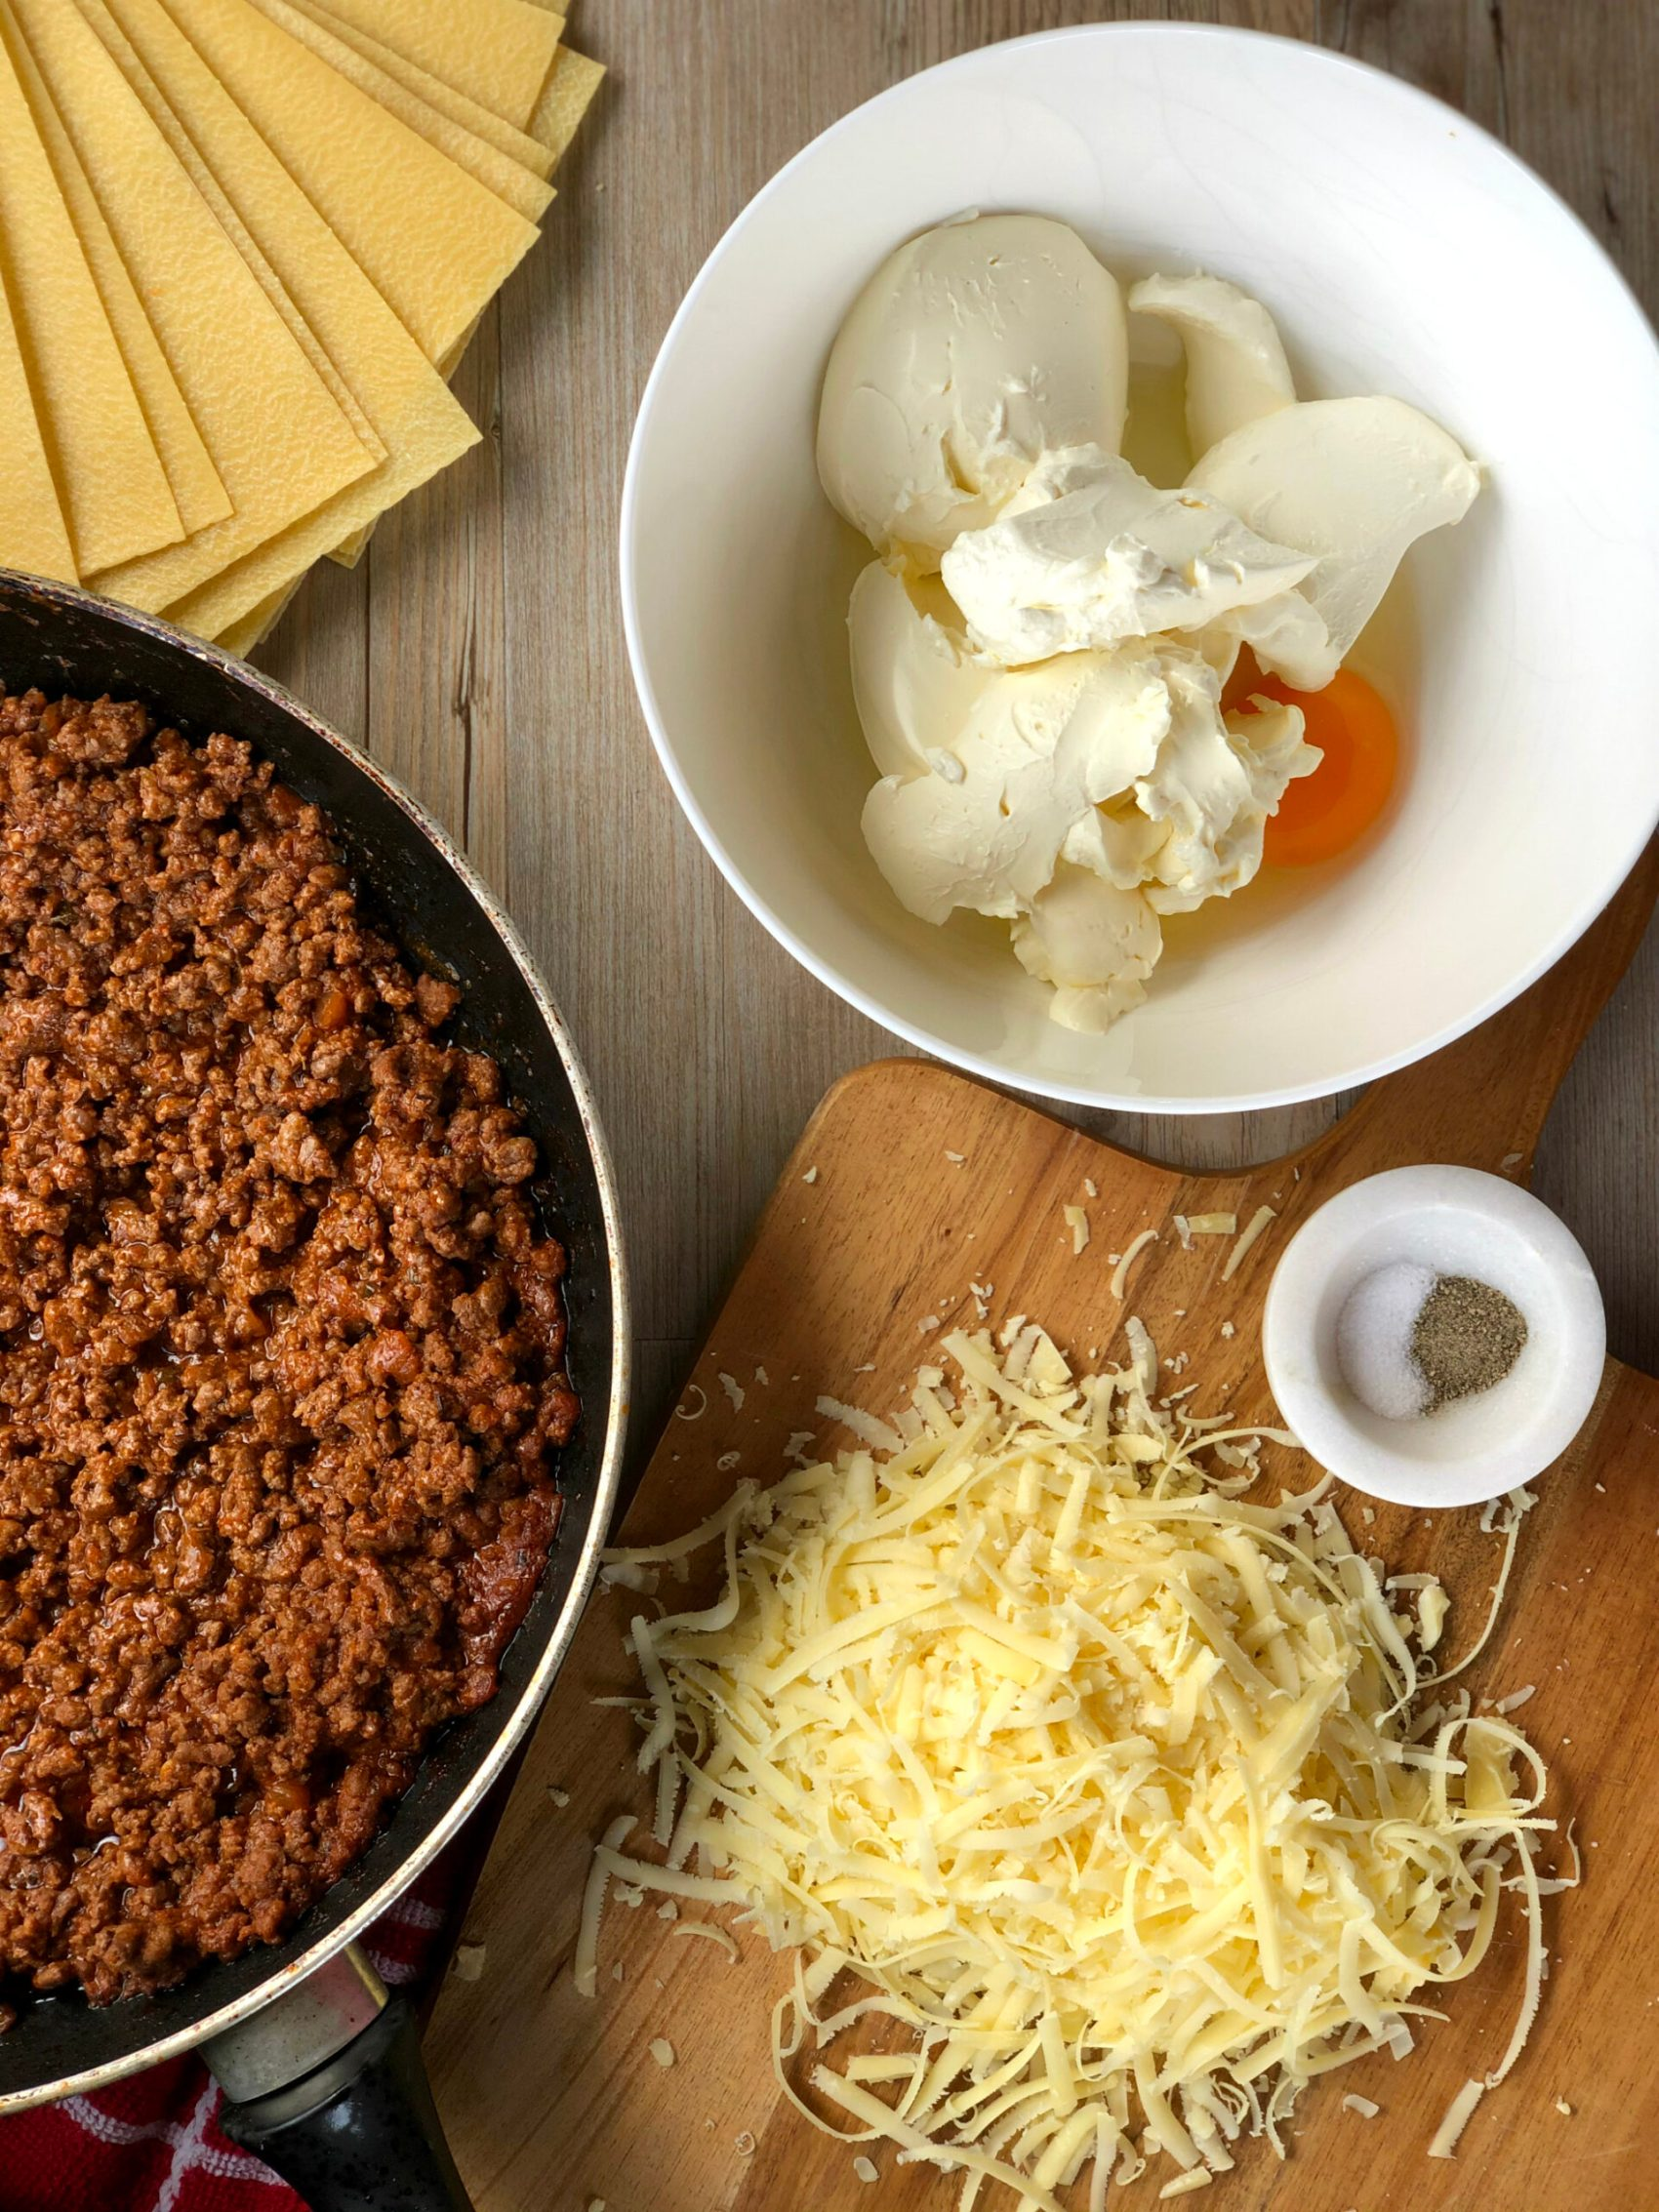 Ingredients for Slow Cooker Lasagne, Cream Cheese Pasta Sheets